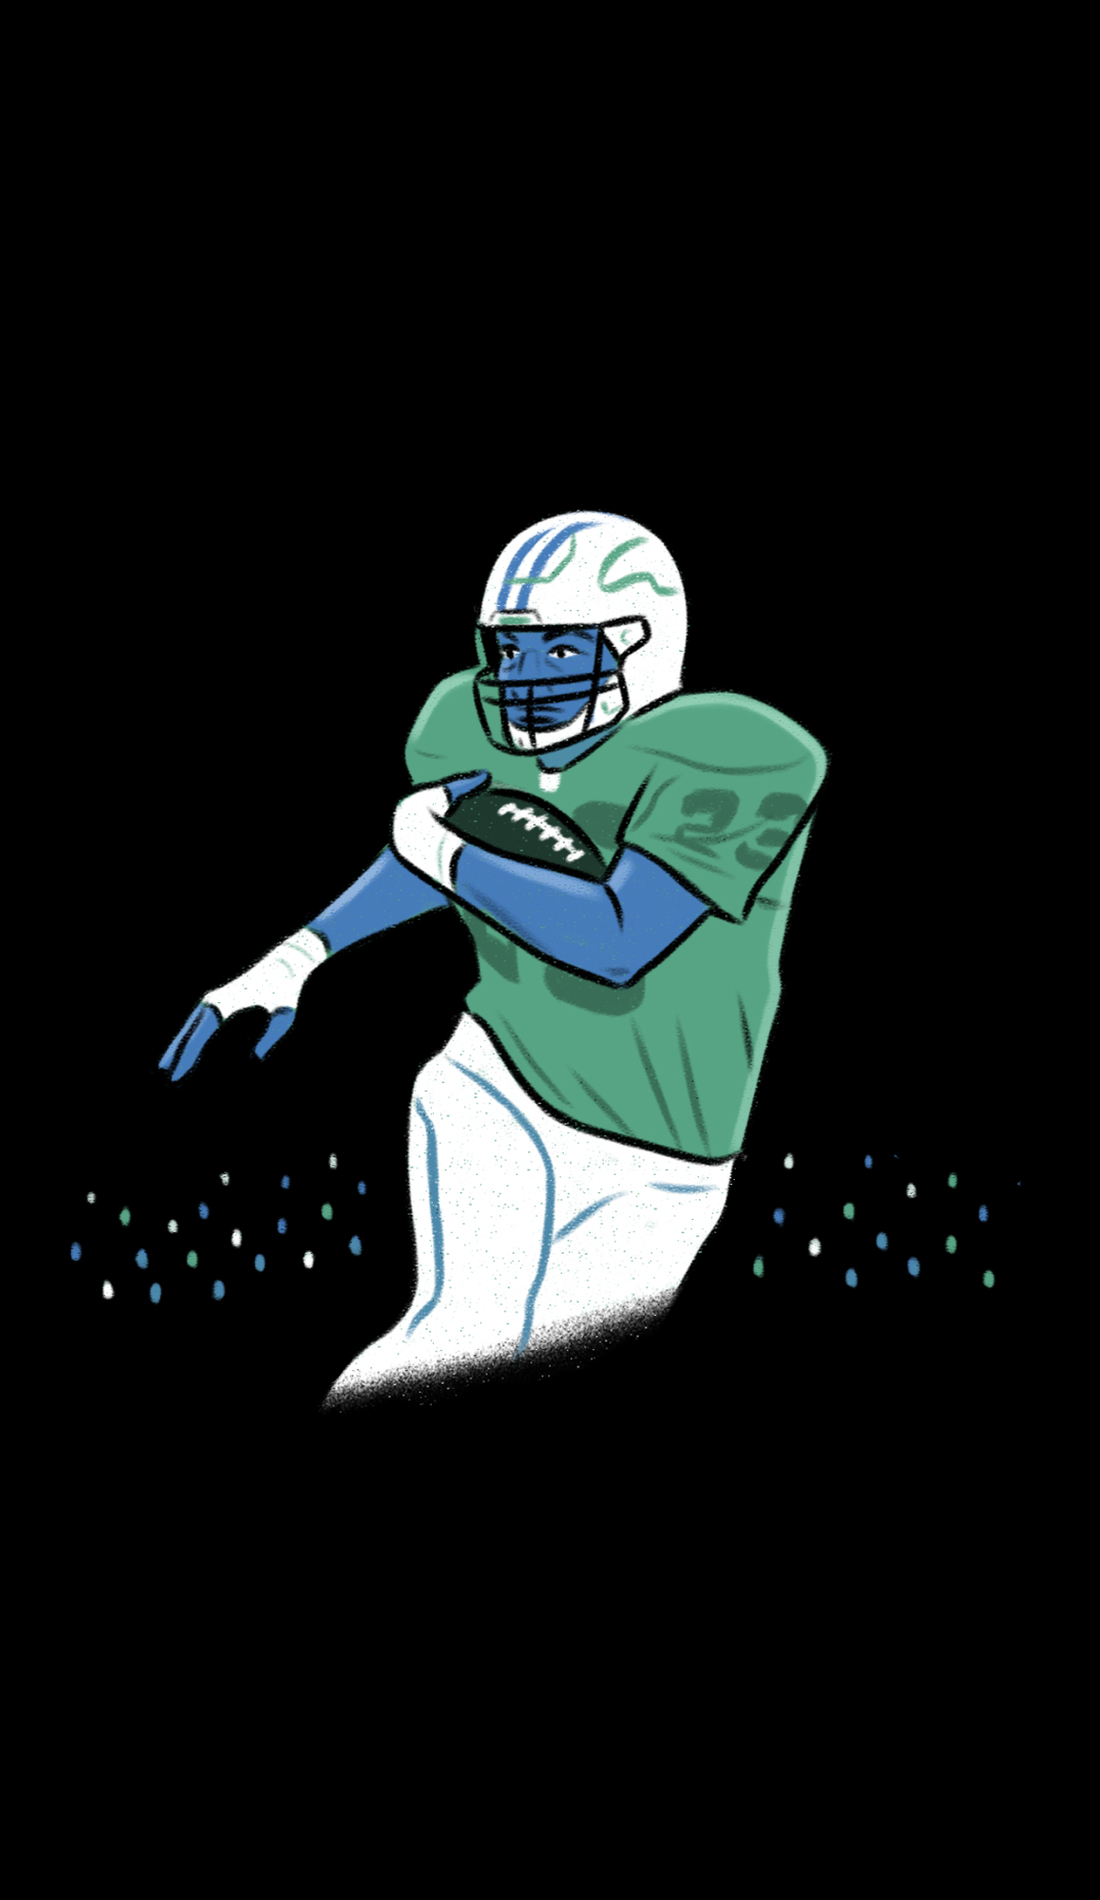 A Hamilton Tiger-Cats live event